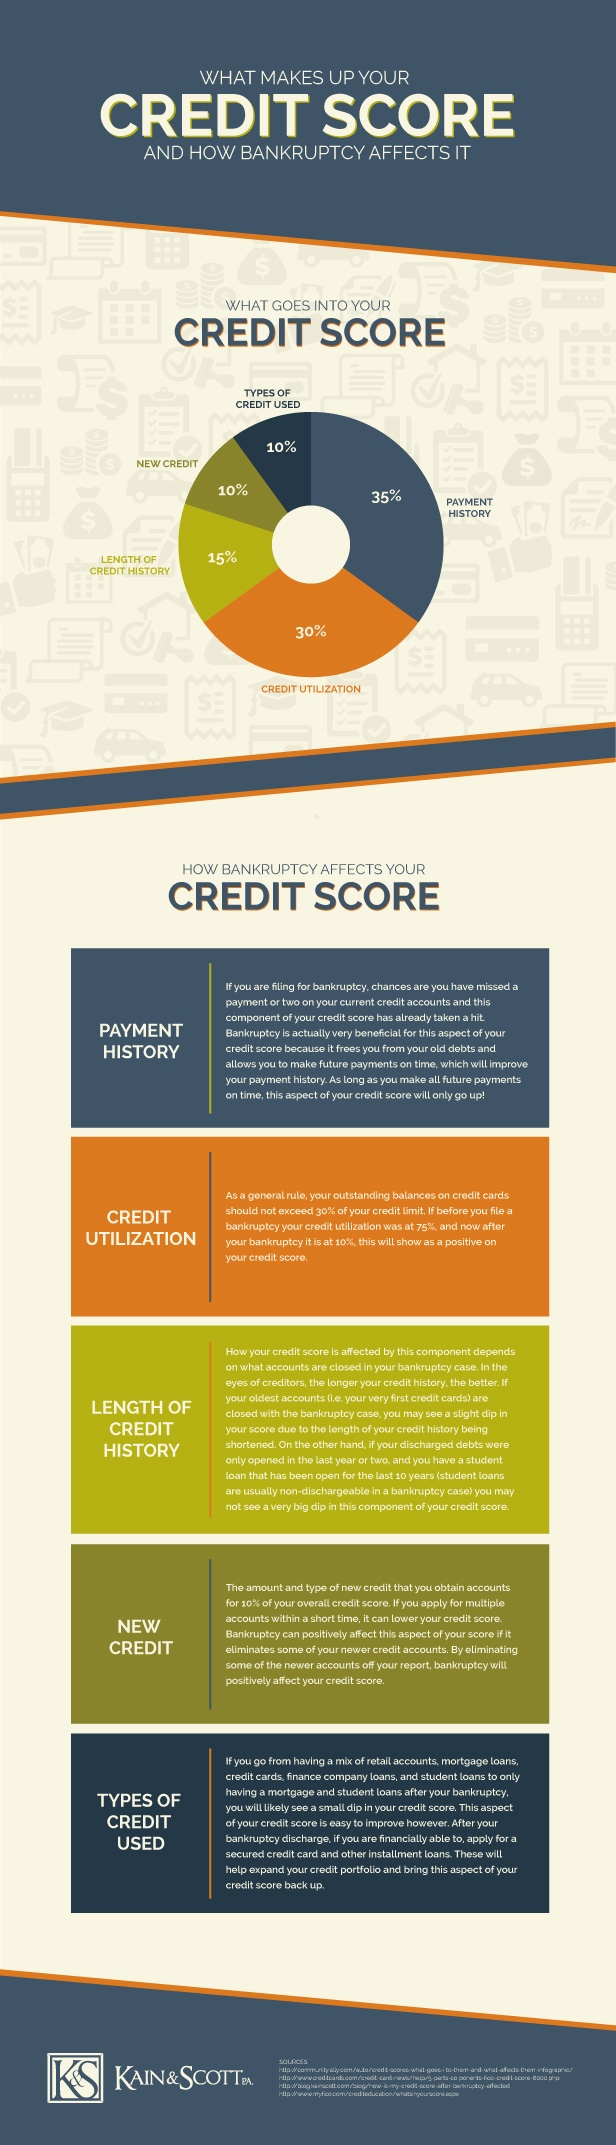 What Makes Up Your Credit Score and How Bankruptcy Affects It